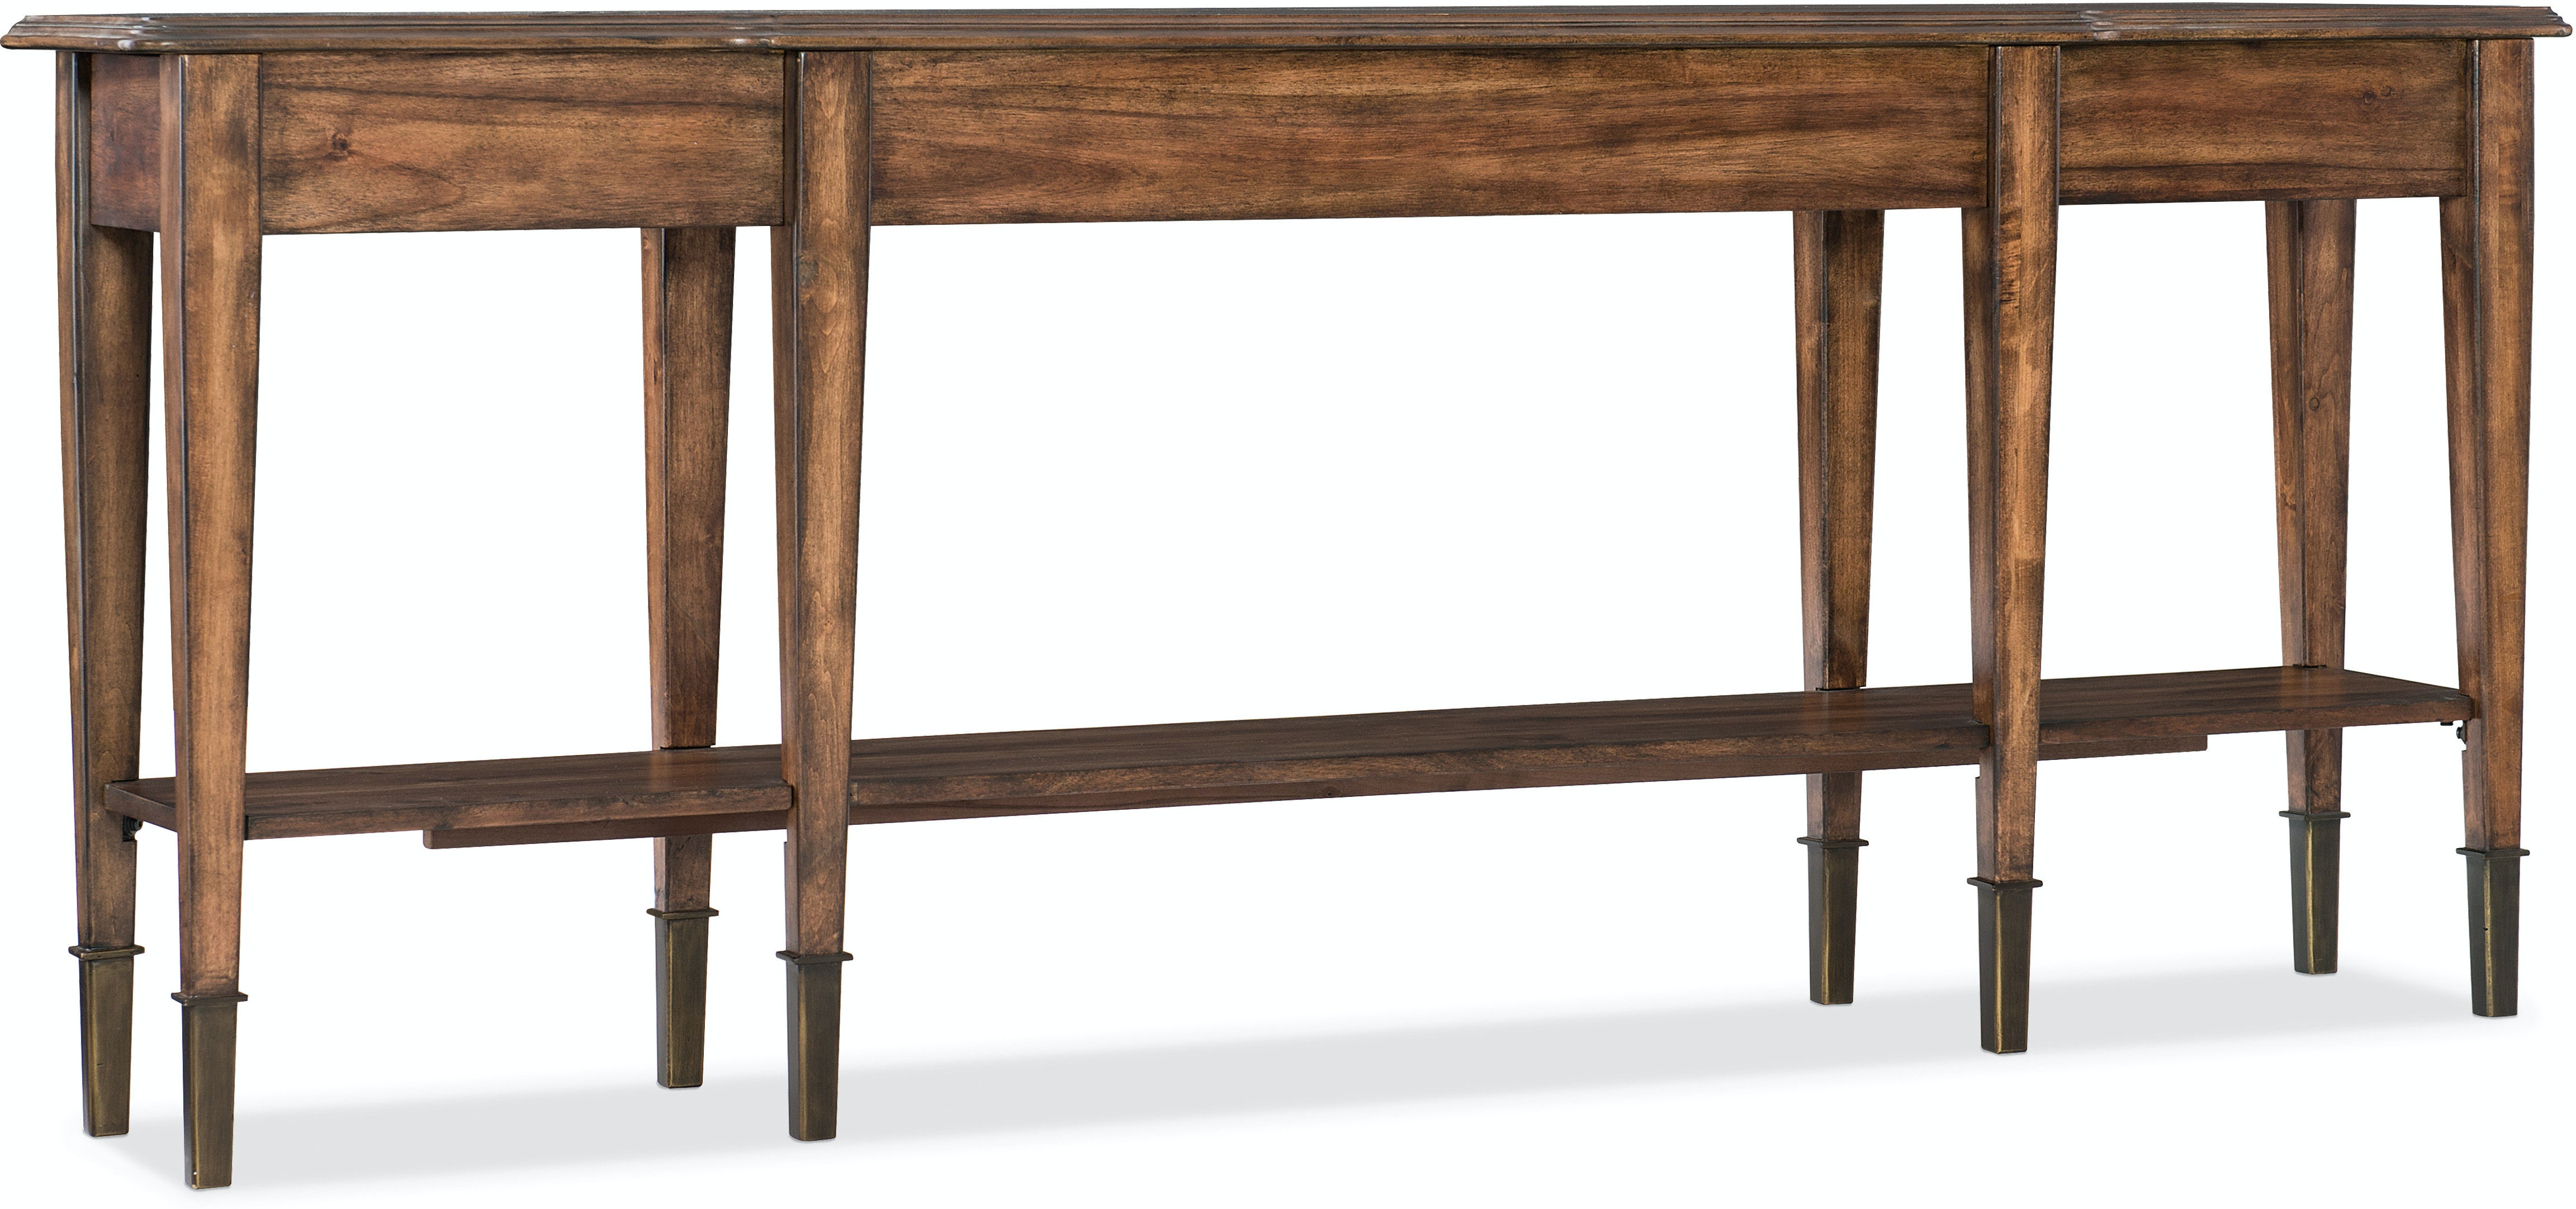 Skinny Console Table 5660 85001 Mwd